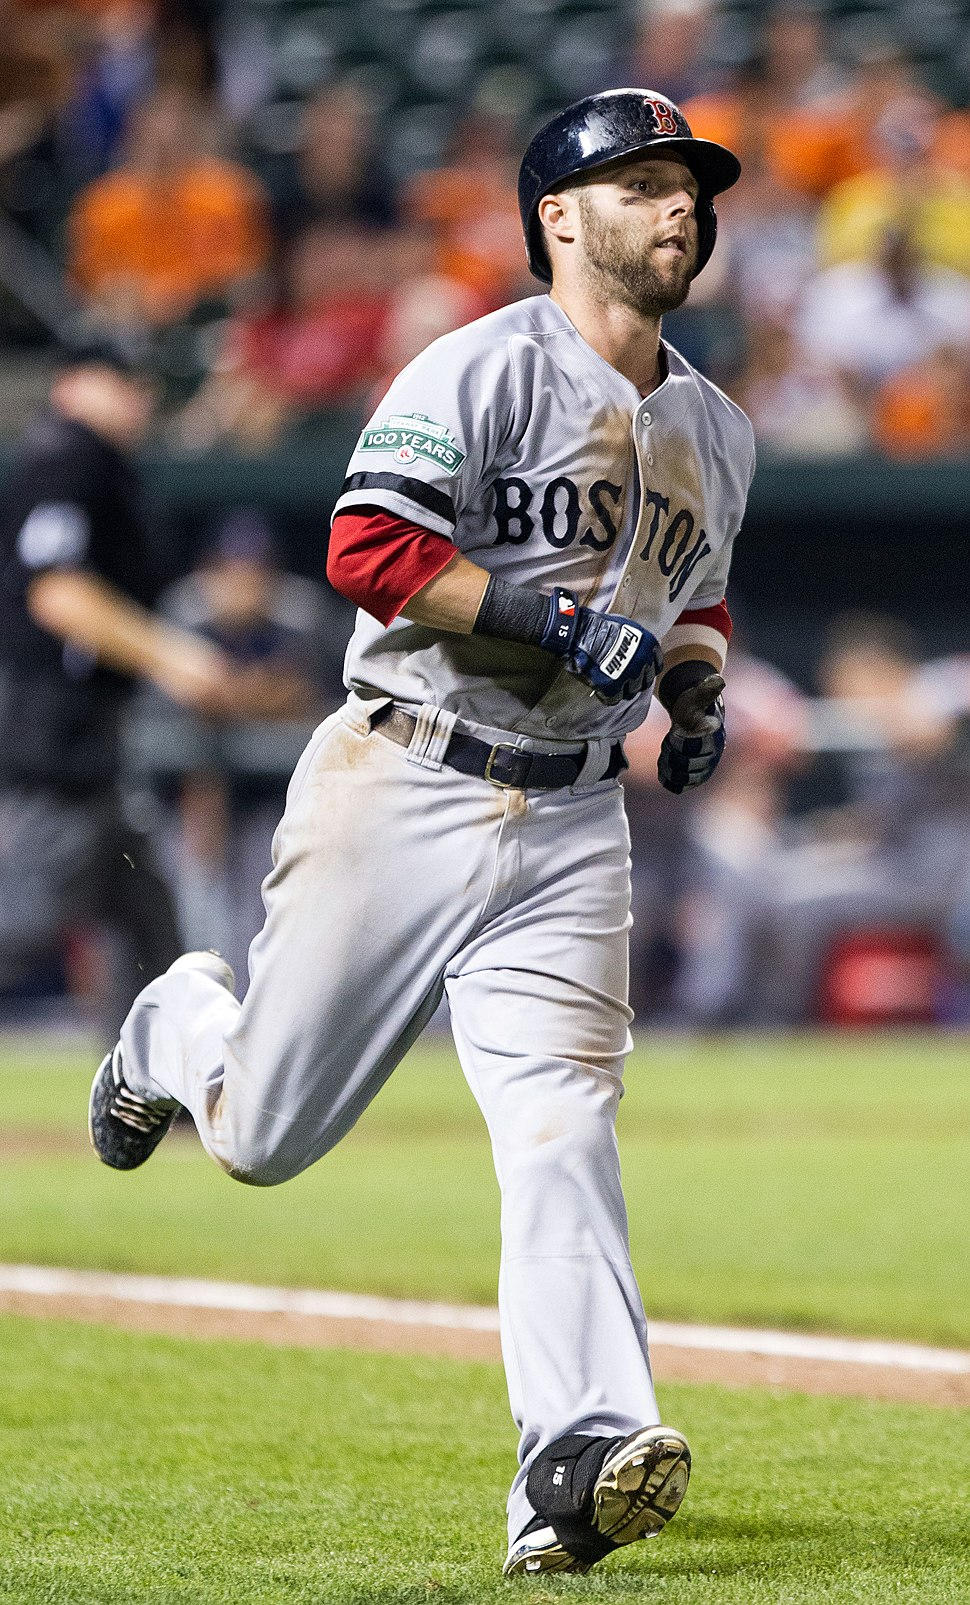 Dustin Pedroia 2012 (cropped)